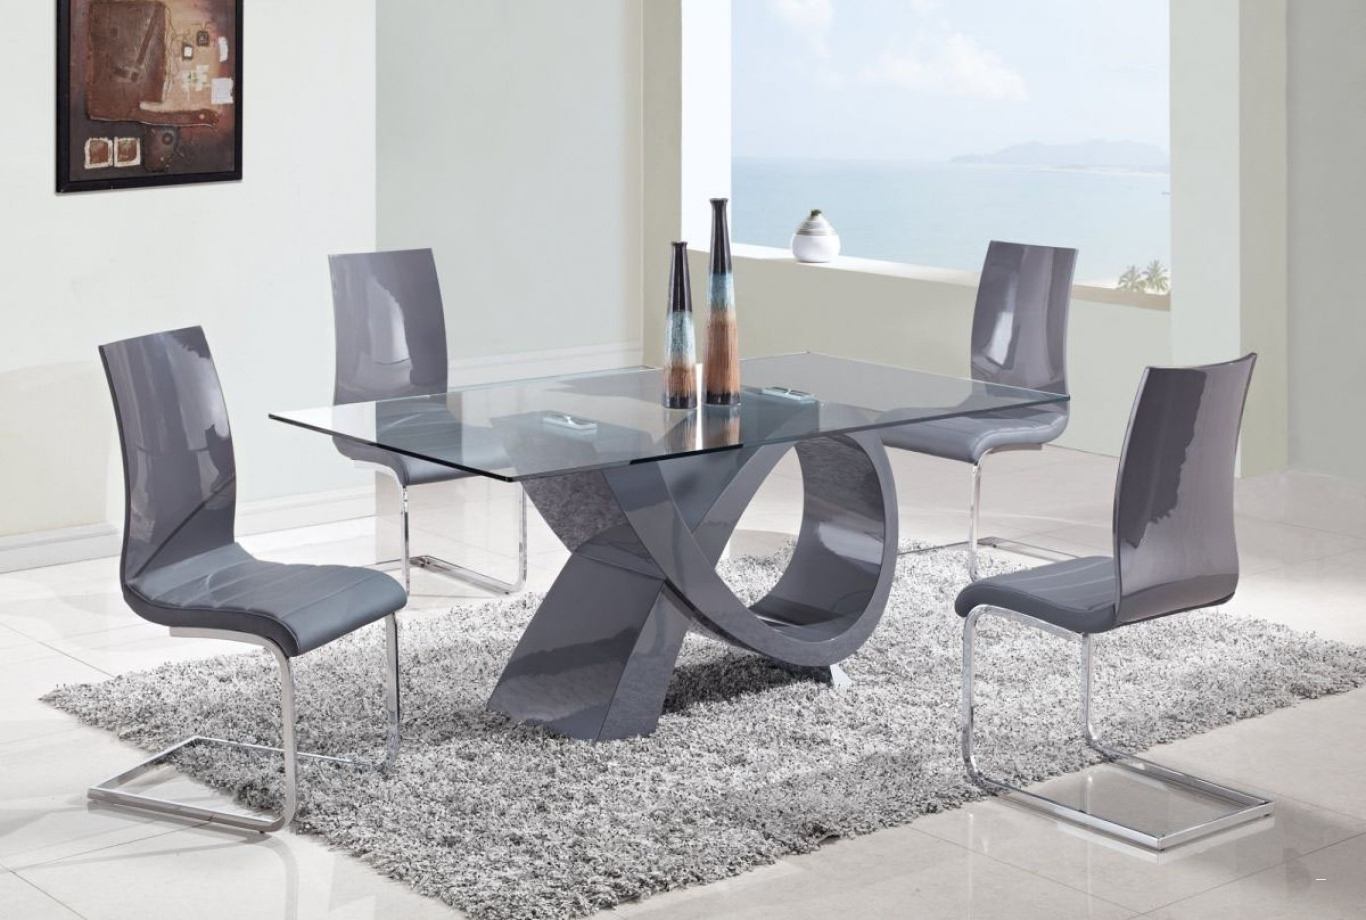 Favorite 6 Seater Glass Dining Table Sets Regarding Caesar Modern Glass Dining Table Set With 6 Seater (View 17 of 25)